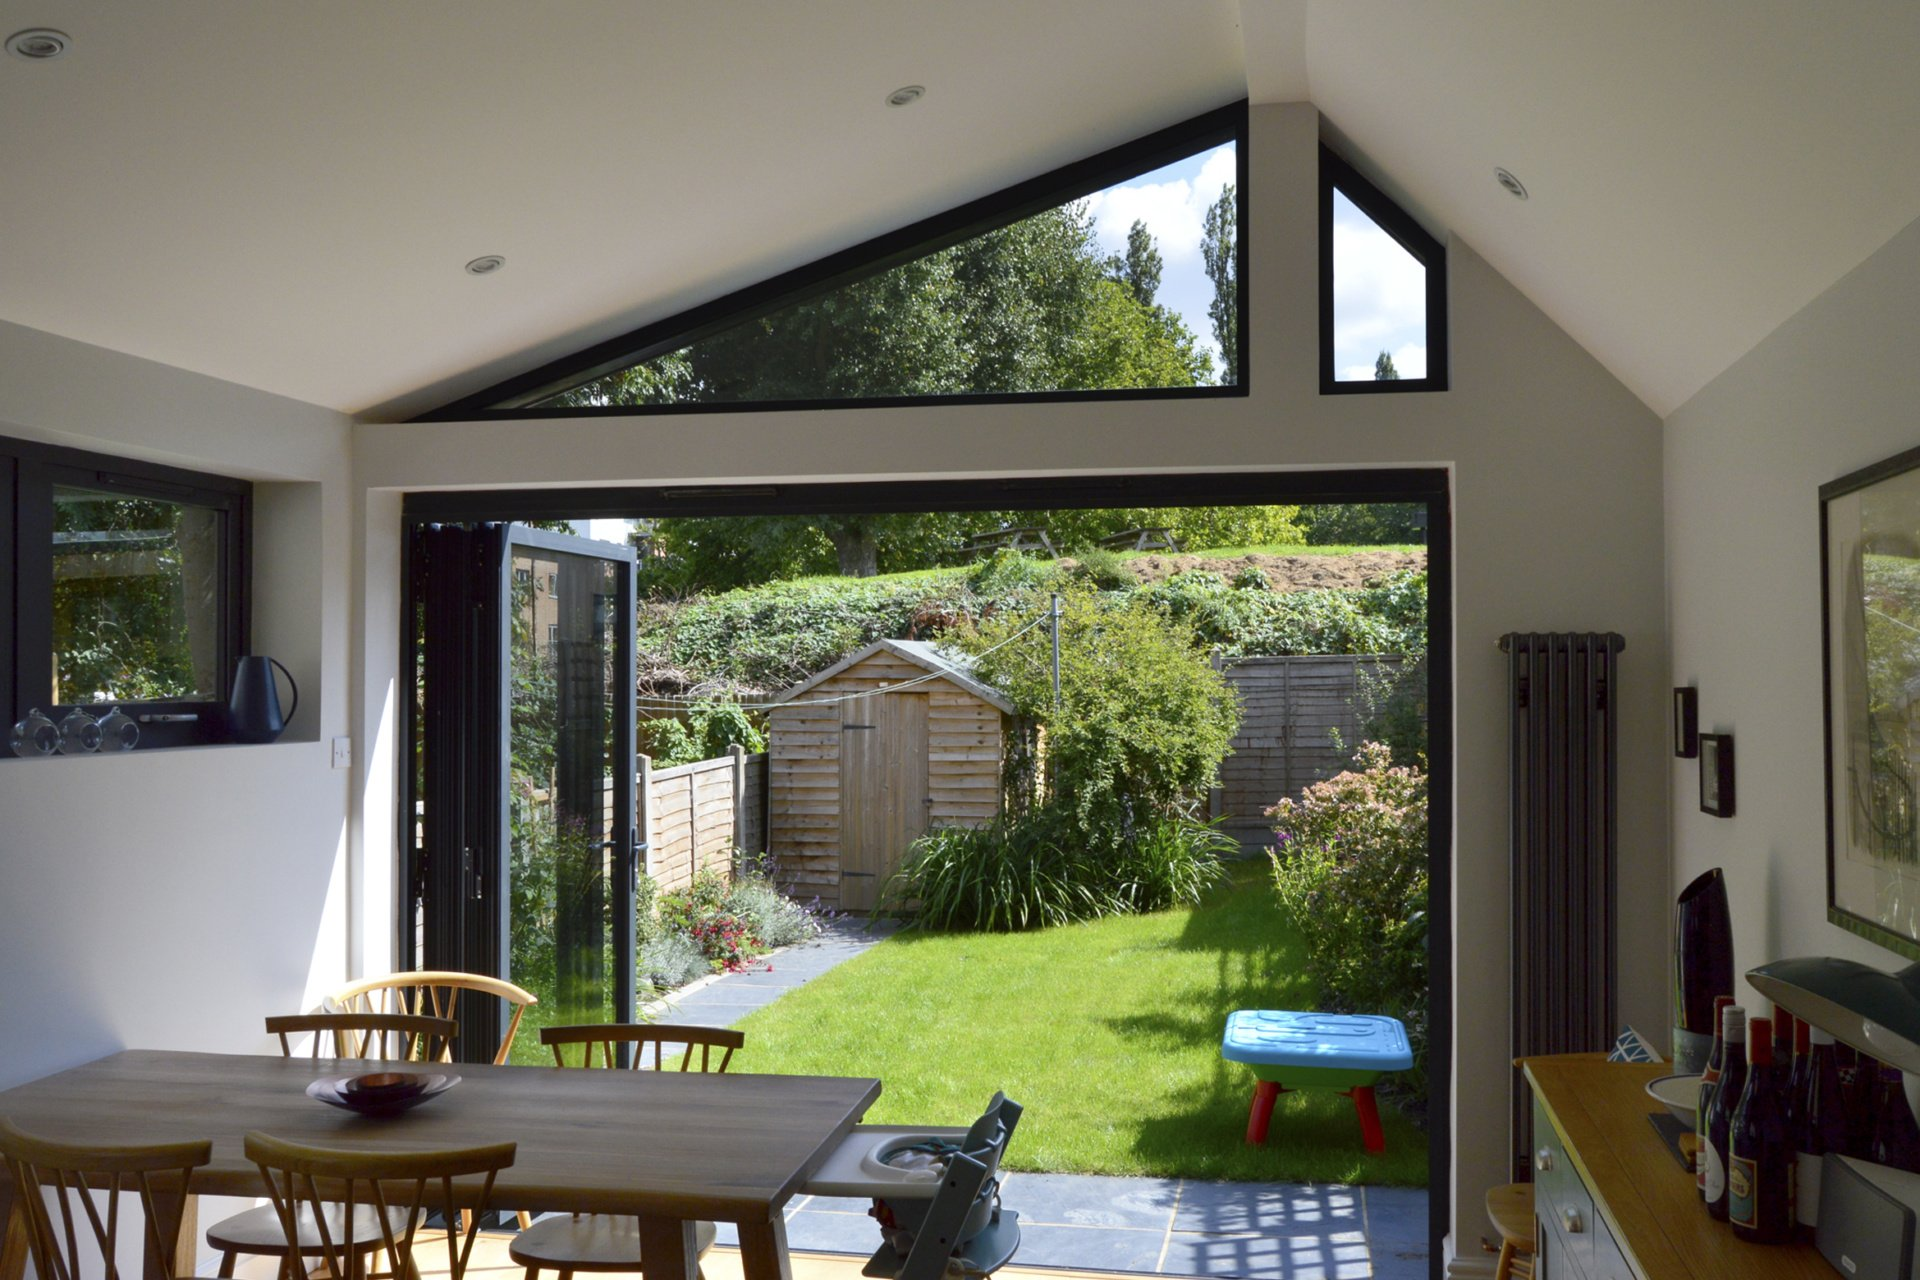 Nunhead Lewisham SE15 House kitchen extension – Inside out view Nunhead, Lewisham SE15 | House kitchen extension